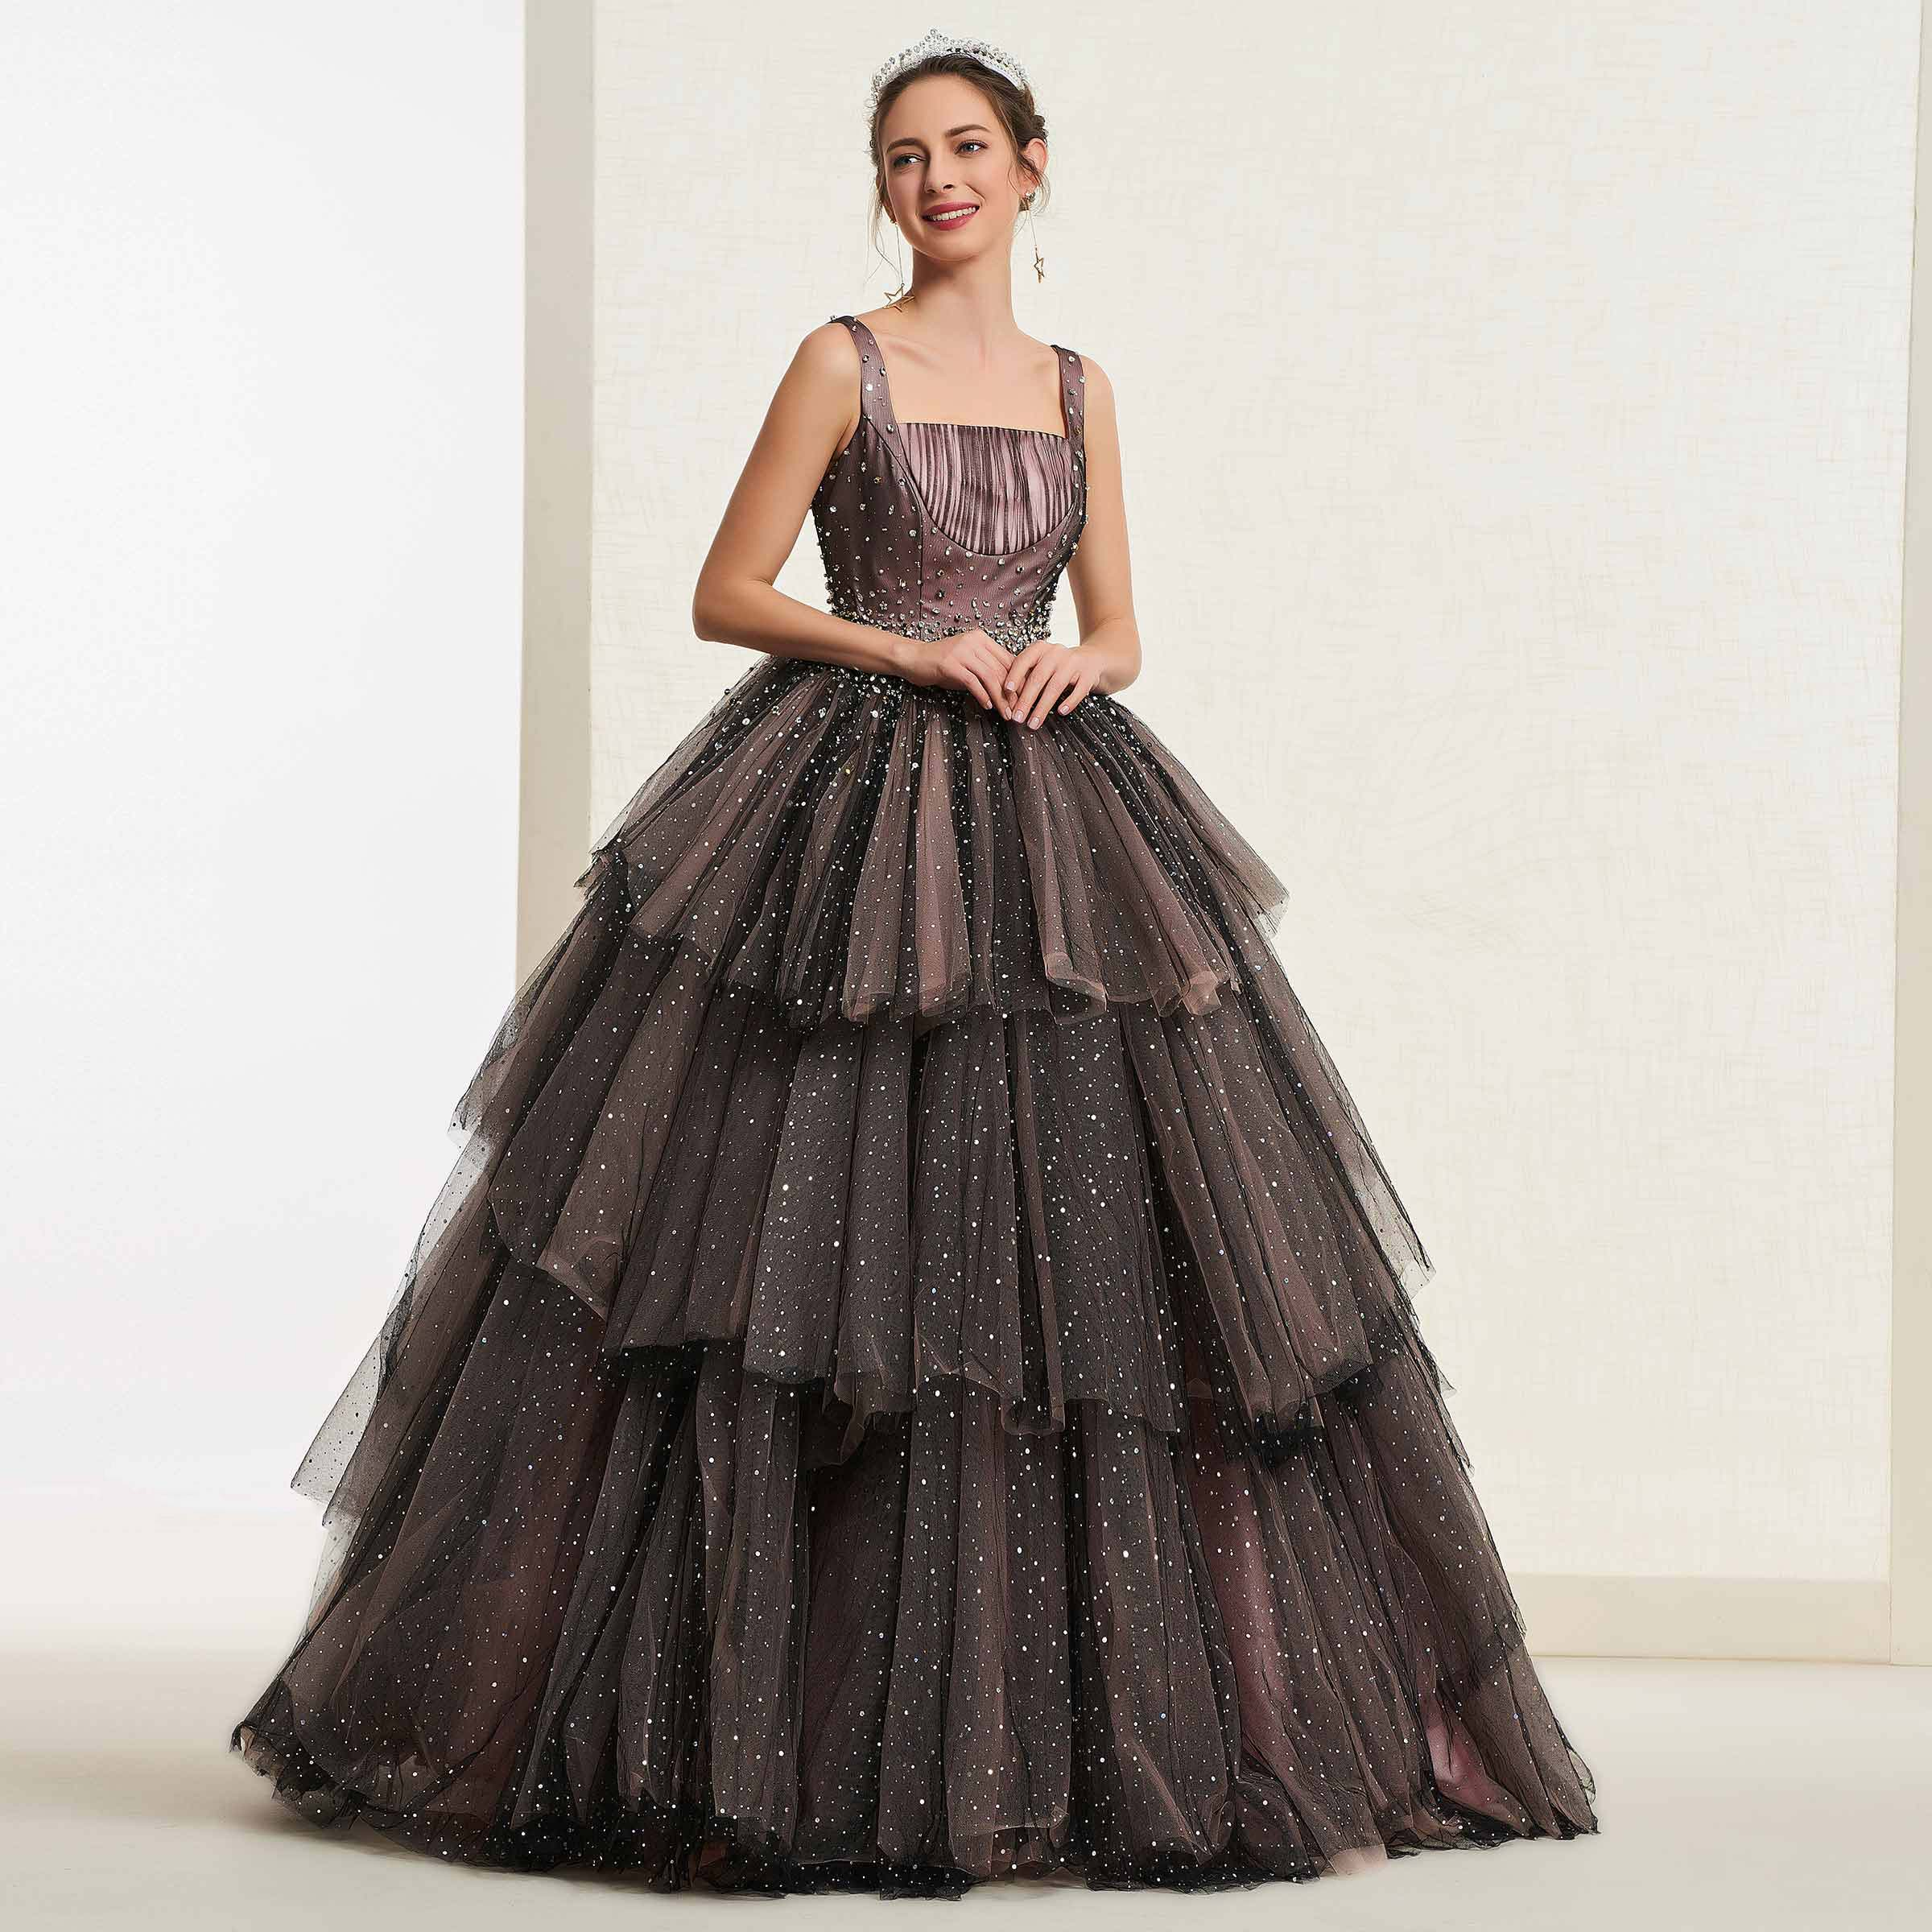 Tanpell Black Ball Gown Quinceanera Dress Beading Tiered Square Sleeveless Floor-Length Christmas Sweet 16 Quinceanera Dress